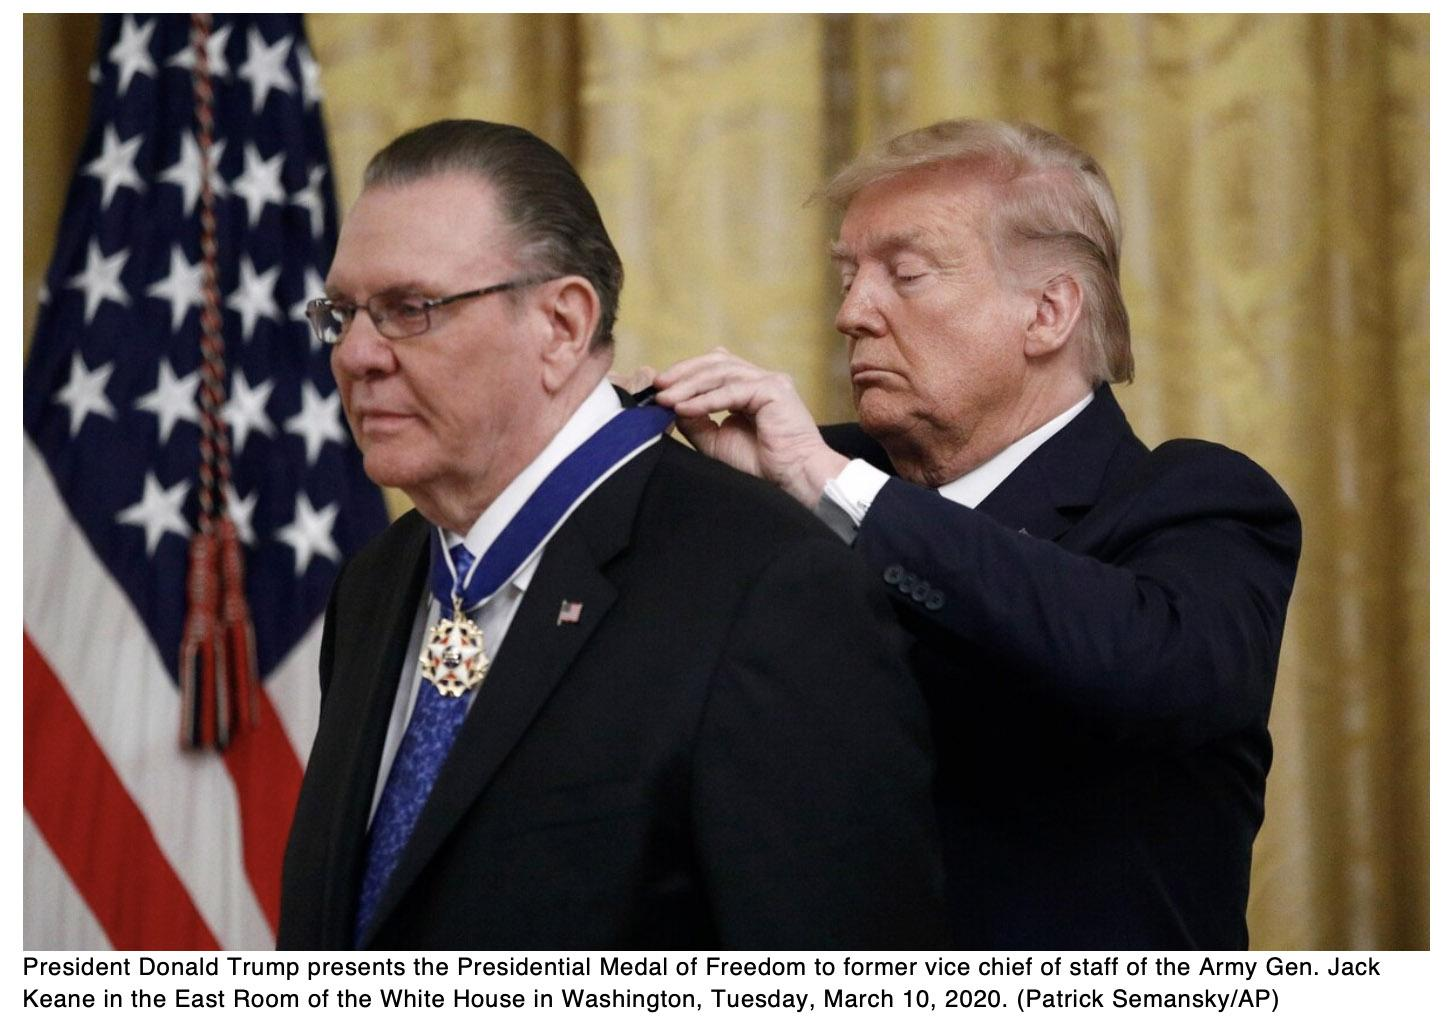 Trump presents Medal of Freedom to retired four-star general